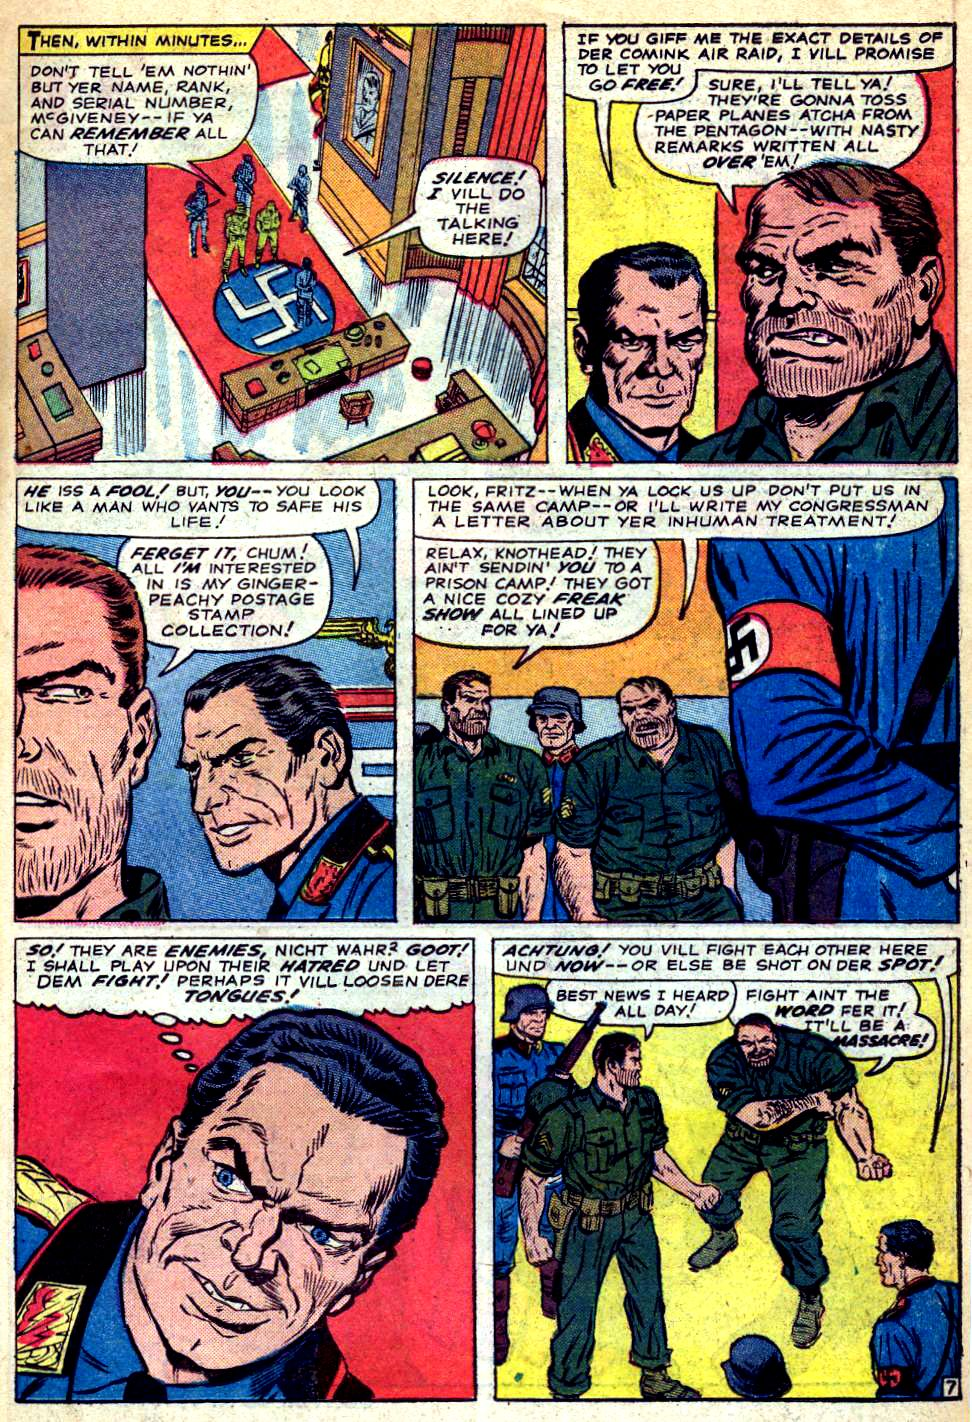 Read online Sgt. Fury comic -  Issue #22 - 11